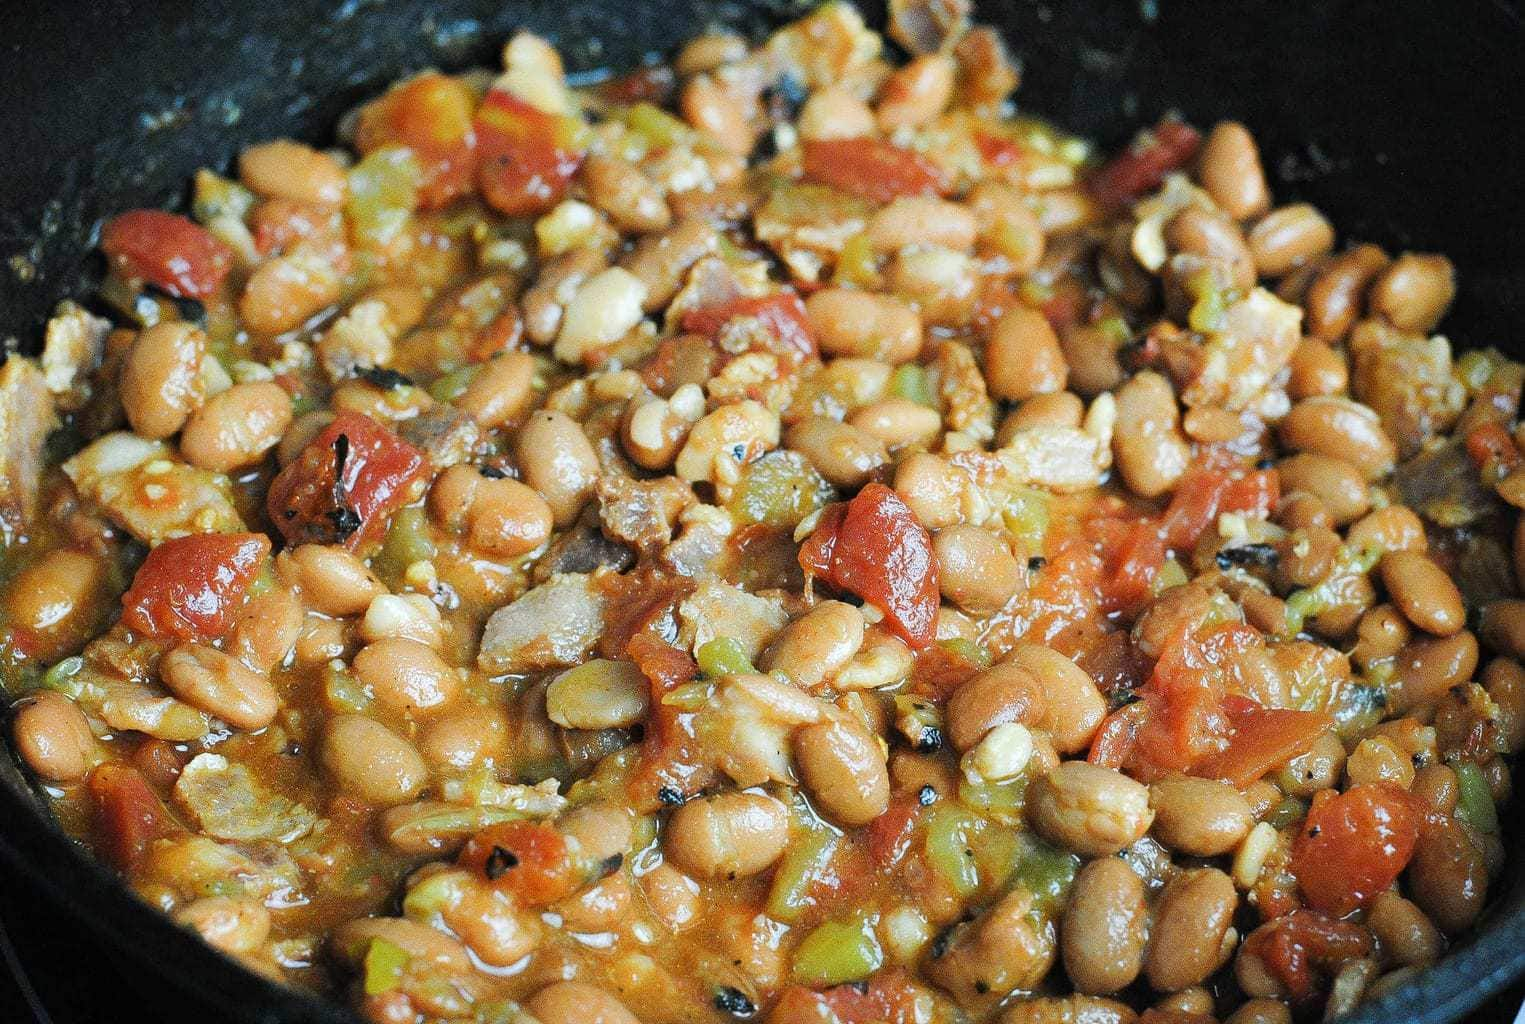 cowboy pinto beans in the iron skillet